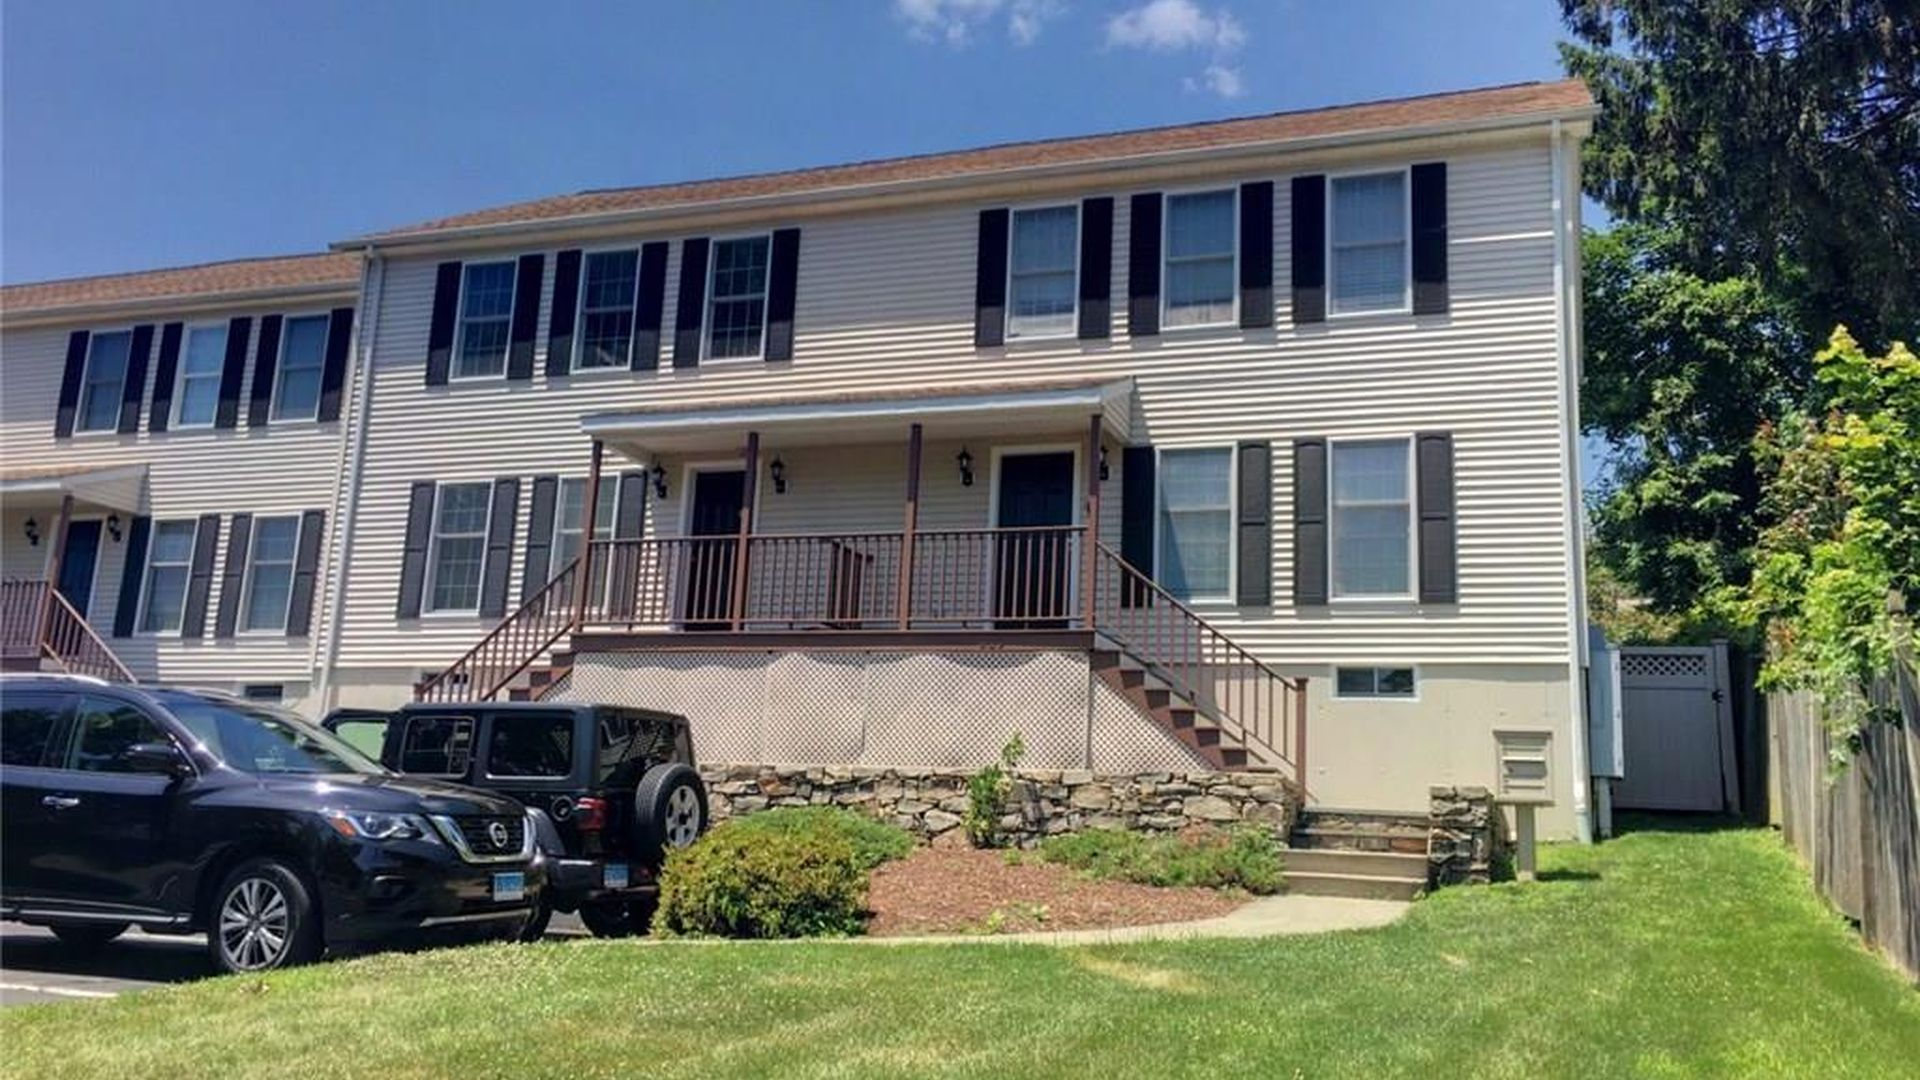 2 Bedroom Apartments In Fairfield Ct | www.myfamilyliving.com